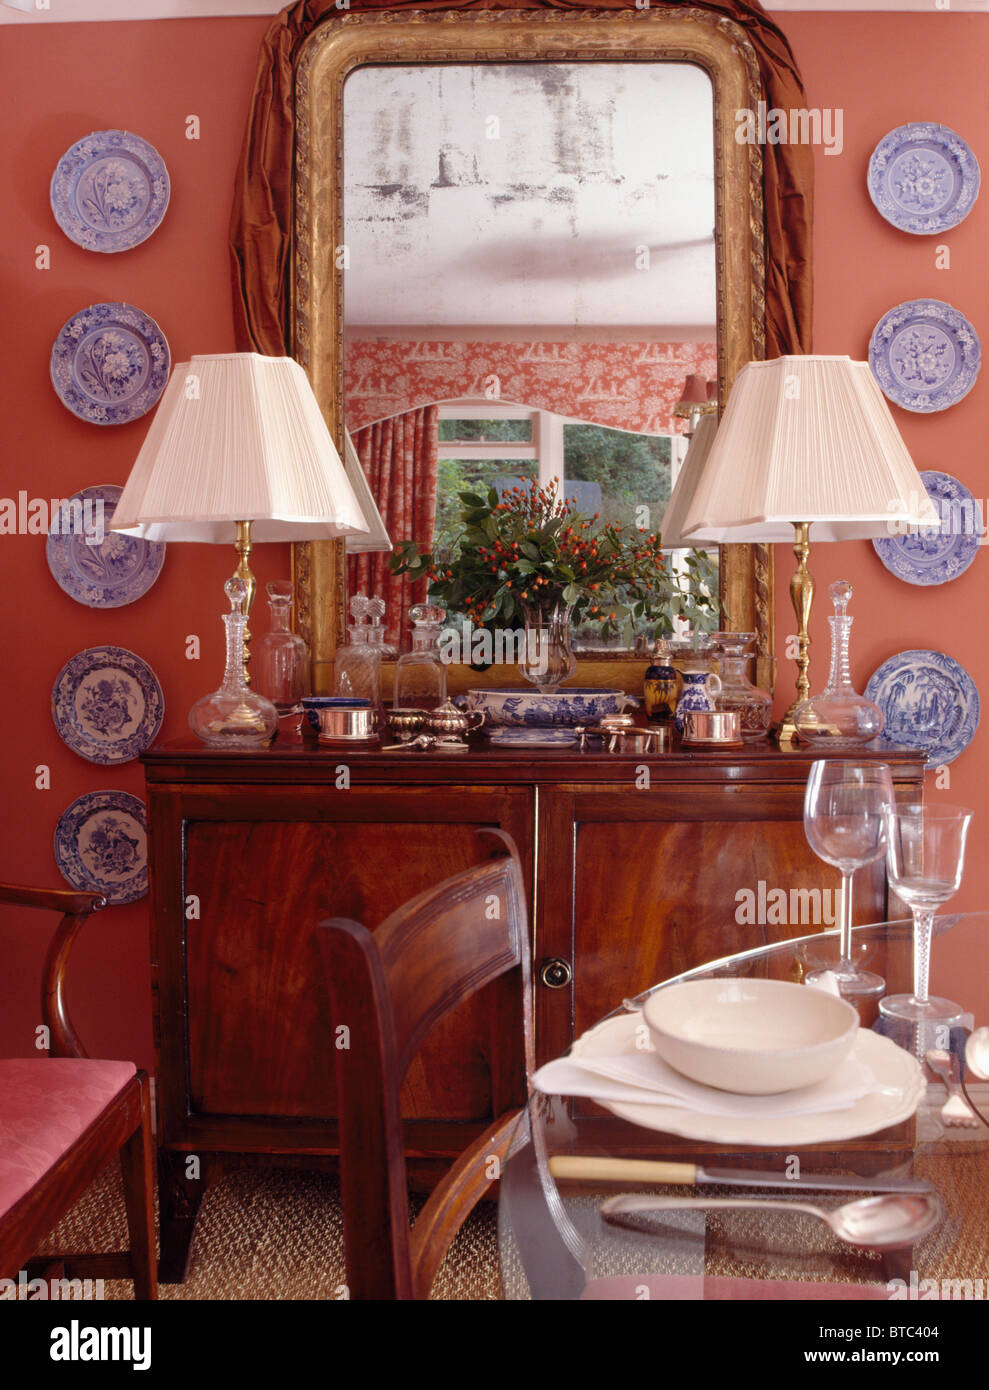 Mirror Above Cream Lamps On Antique Sideboard In Pink Dining Room With Blue White Plate Collection Wall